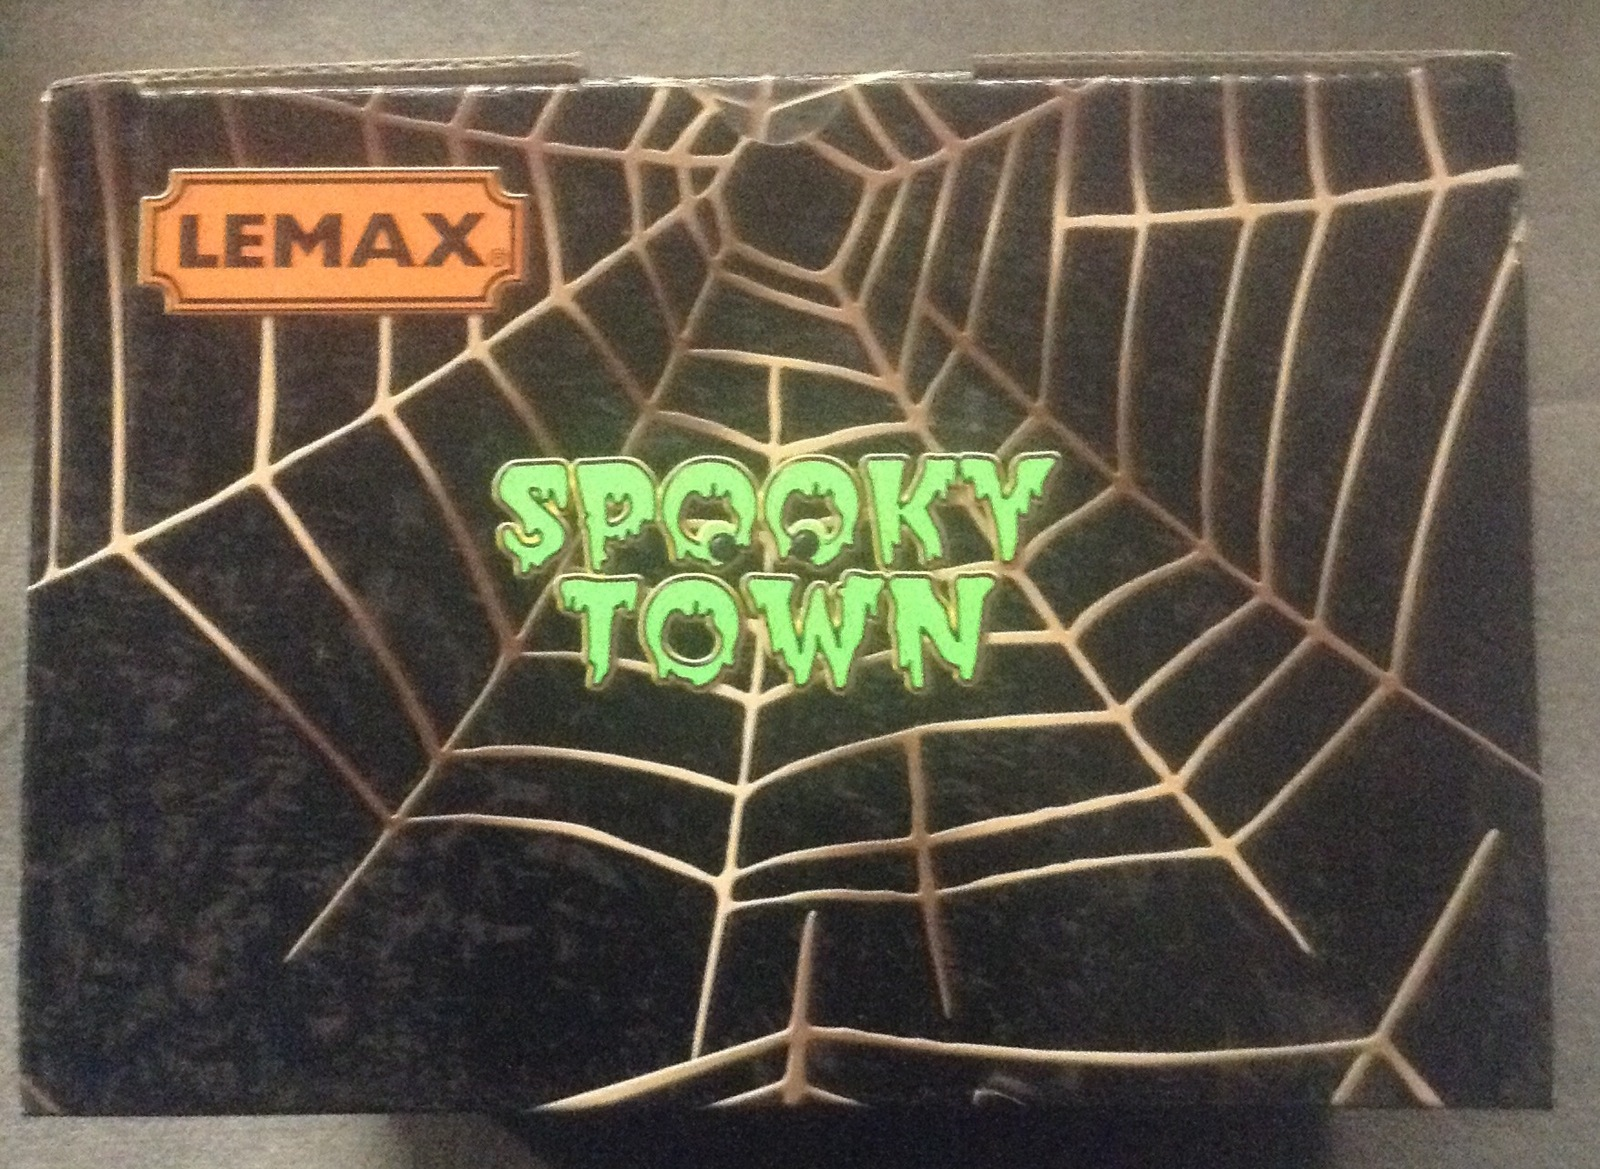 Lemax Halloween Spooky Town Cave Sweet Cave Vampire Lighted Animated Accent